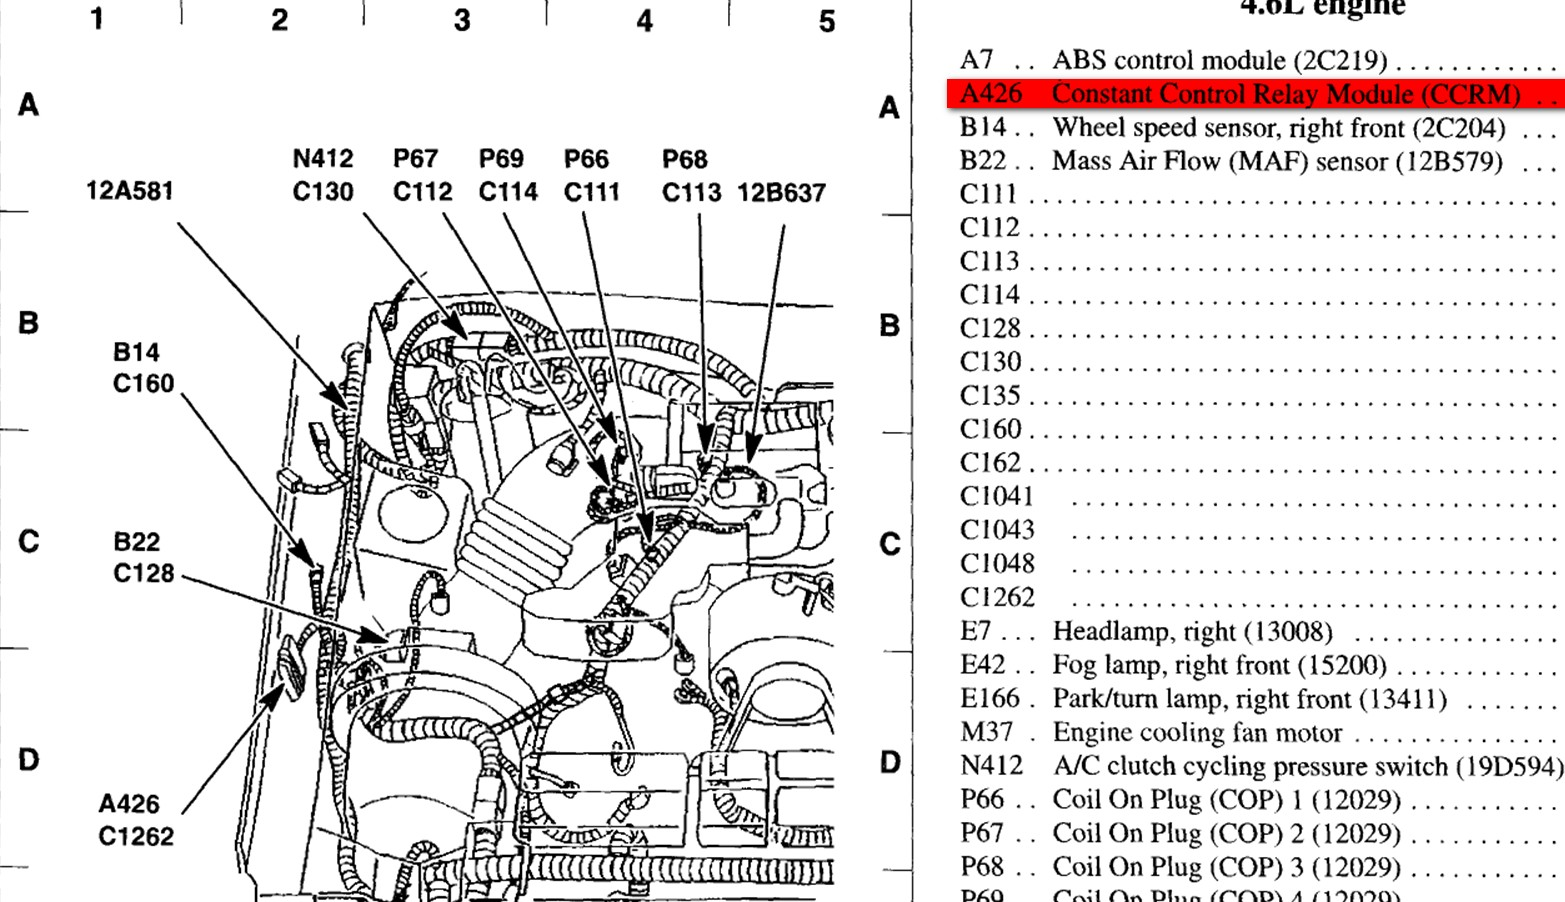 2001 F150 Fuel Pump Wiring Diagram 05 Electrical Diagrams Ford Image Details Wire Altima